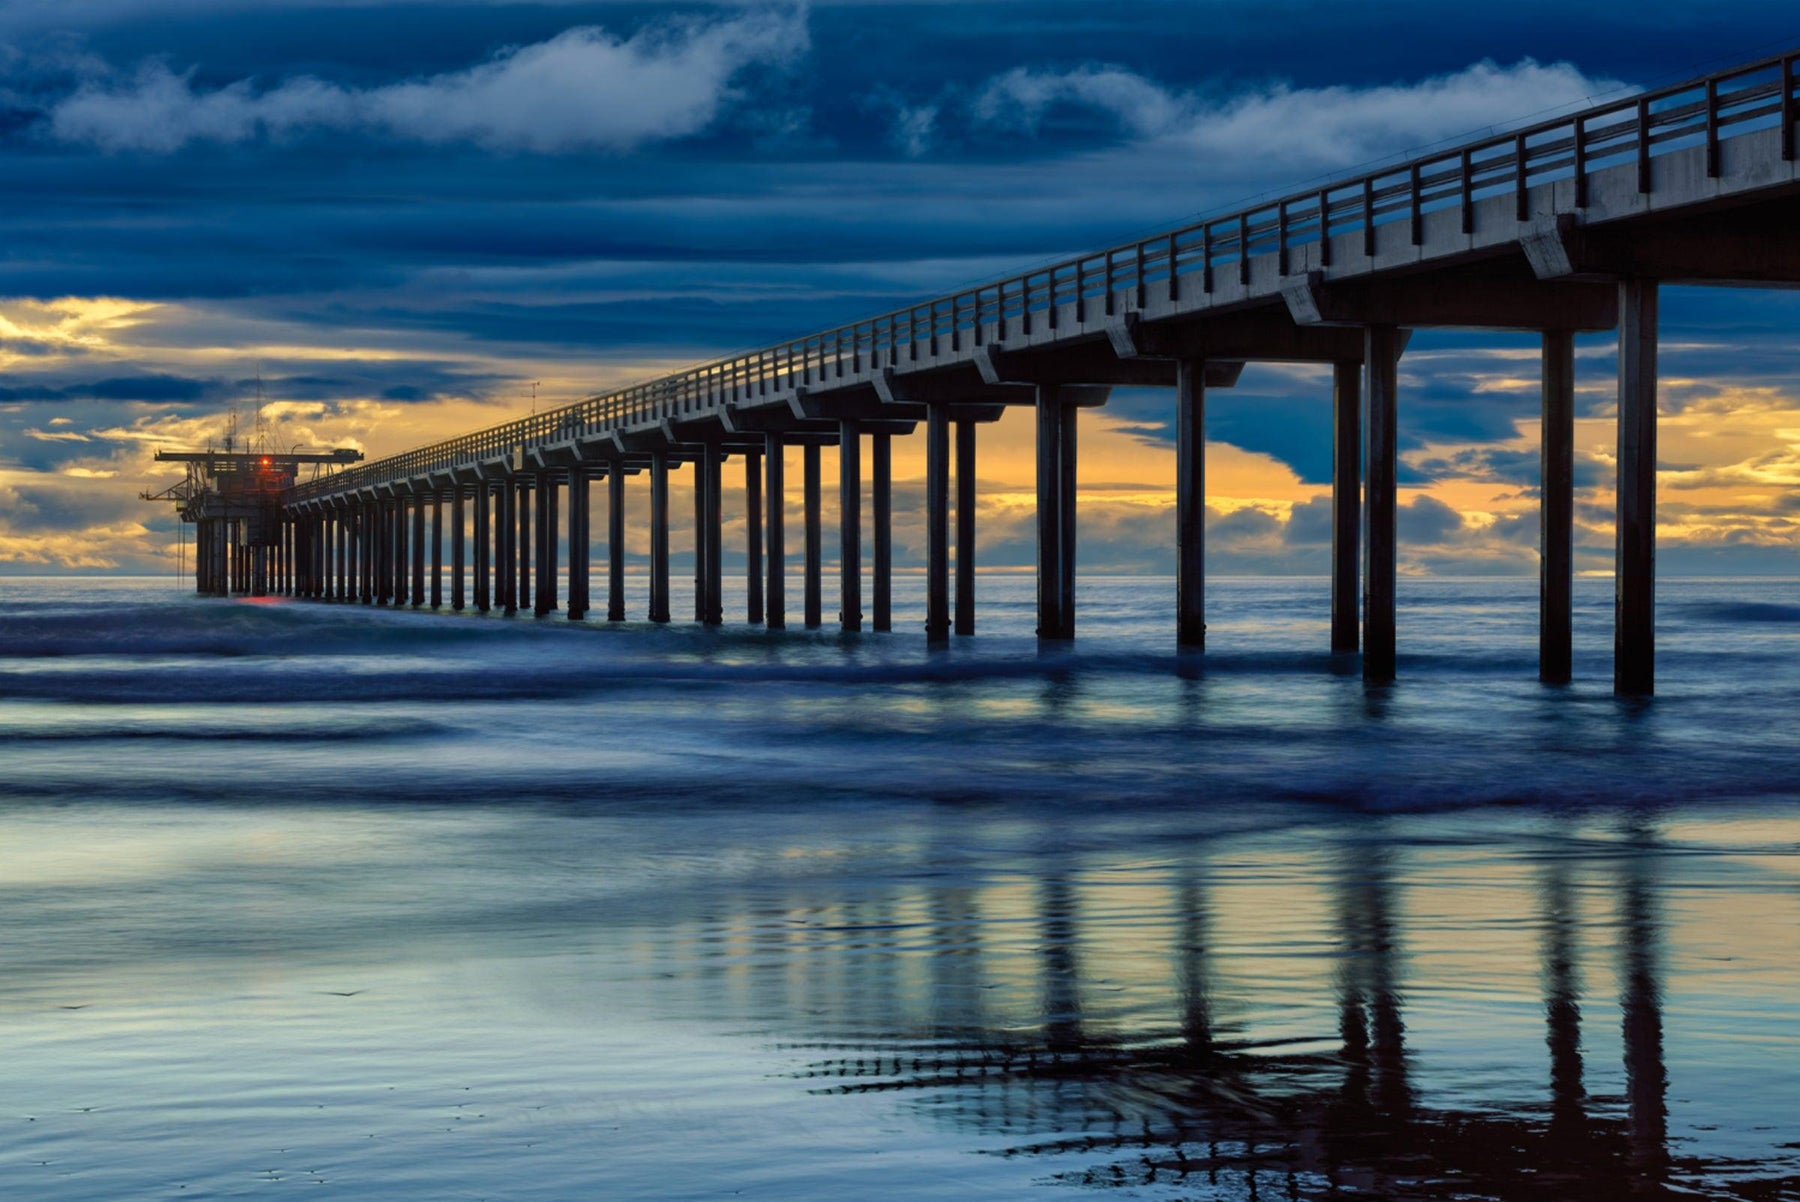 Scipps Pier in California leading off into the ocean under a blue and stormy sky